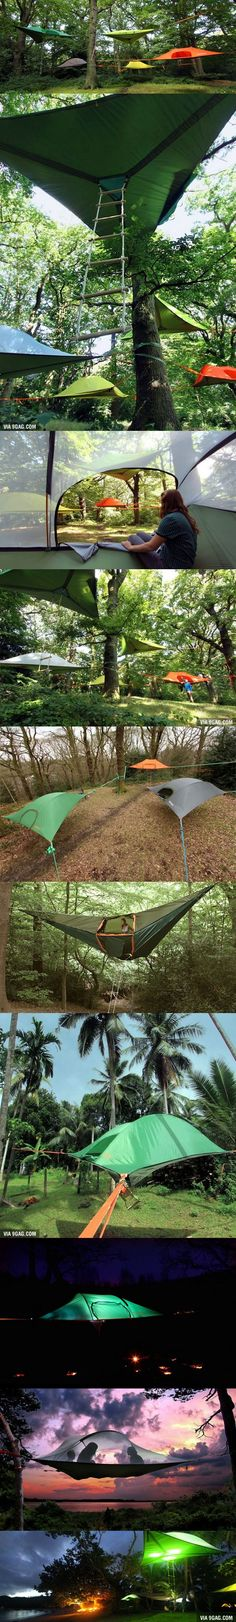 Tree tents! Camping anyone? http://commentandshareit.com